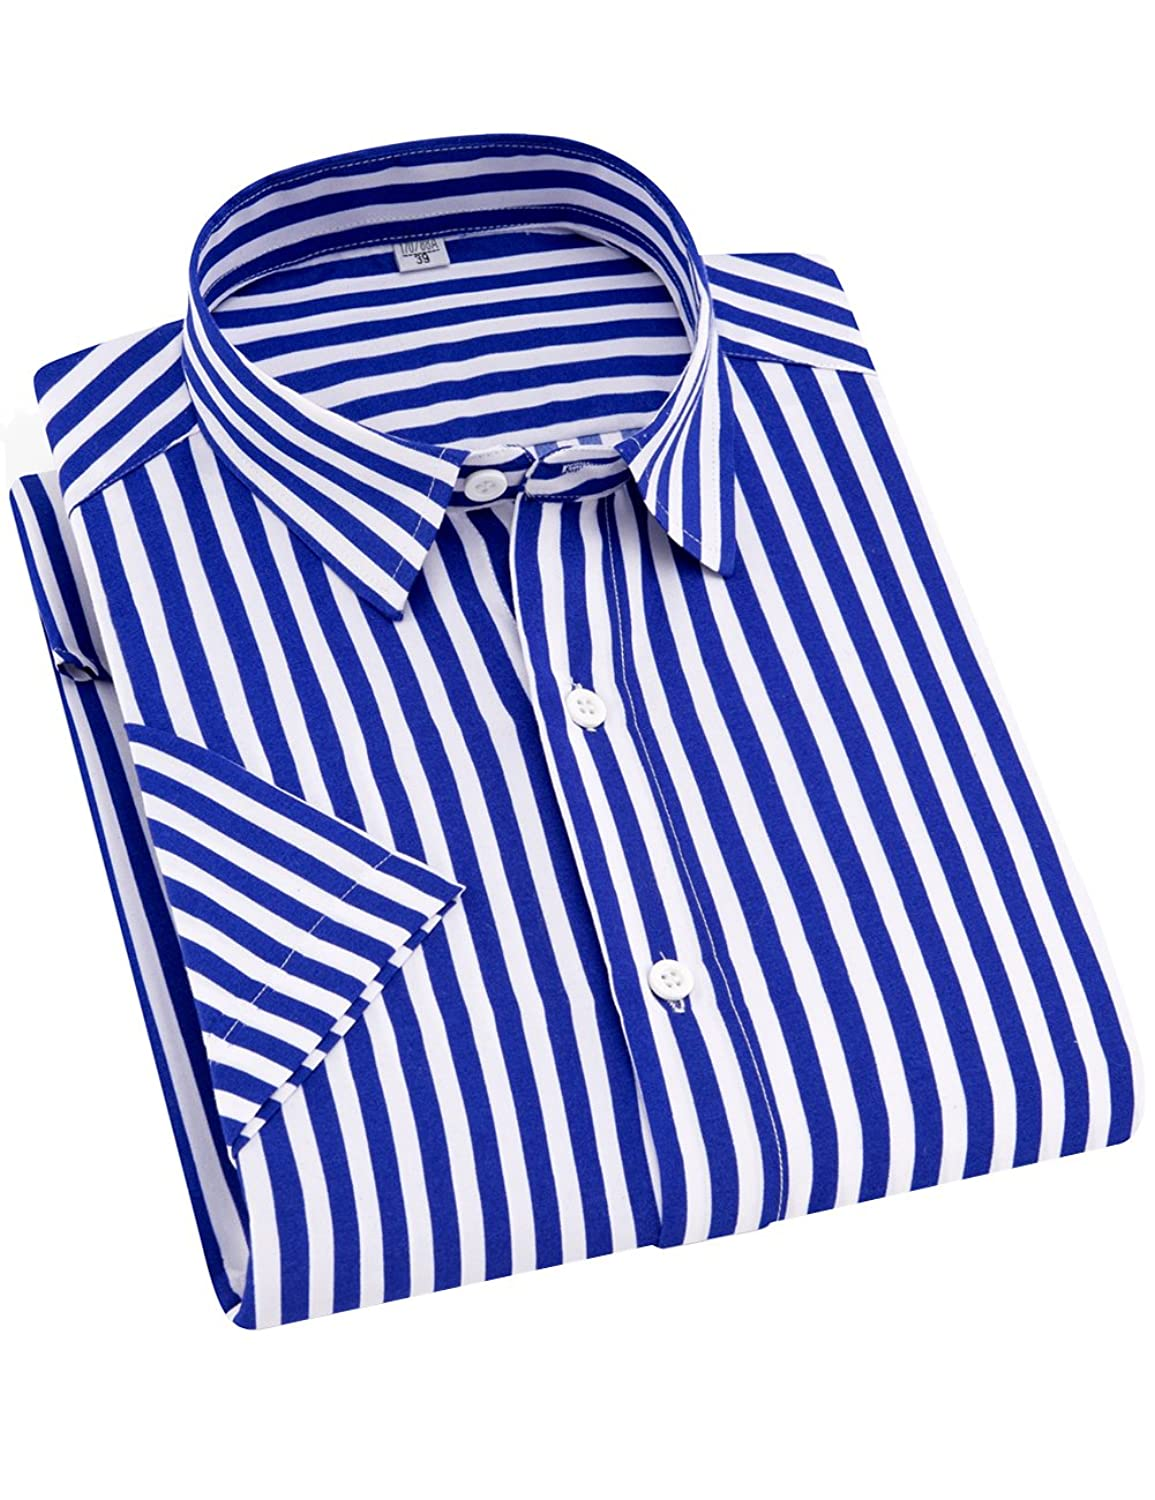 287f66af4 100% Cotton Stripe Fabric Imported STYLE:Mens Summer Fashion short Sleeve  Fitted Dress Shirts(Vertical Striped) FEATURE:This Stylish Men\'s Collared  Dress ...